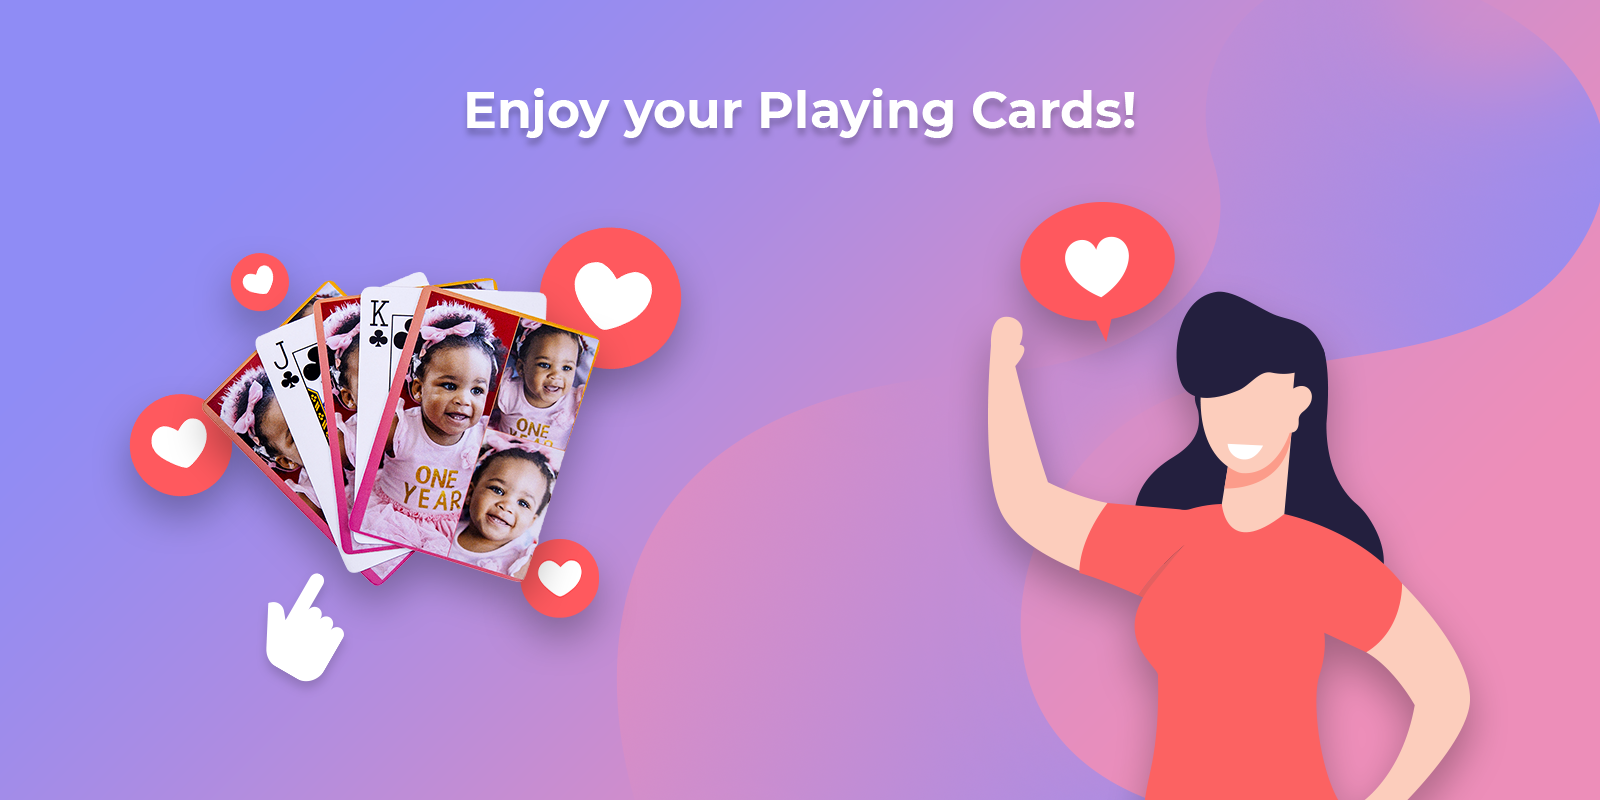 Enjoy your custom made playing cards!